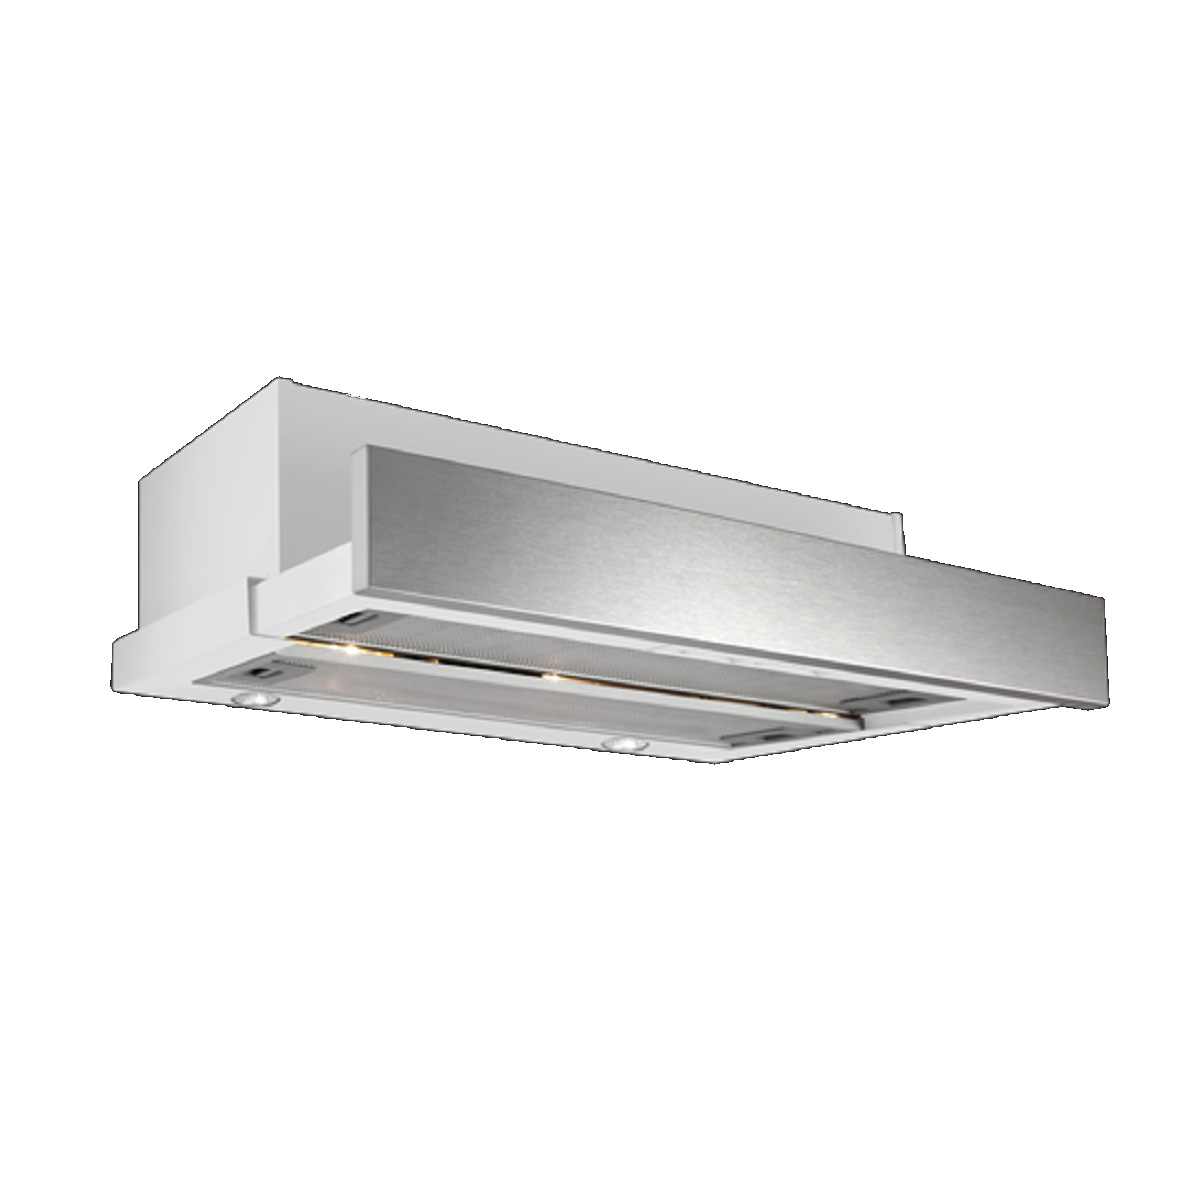 Omega Slide Out Rangehood ORT9WXA